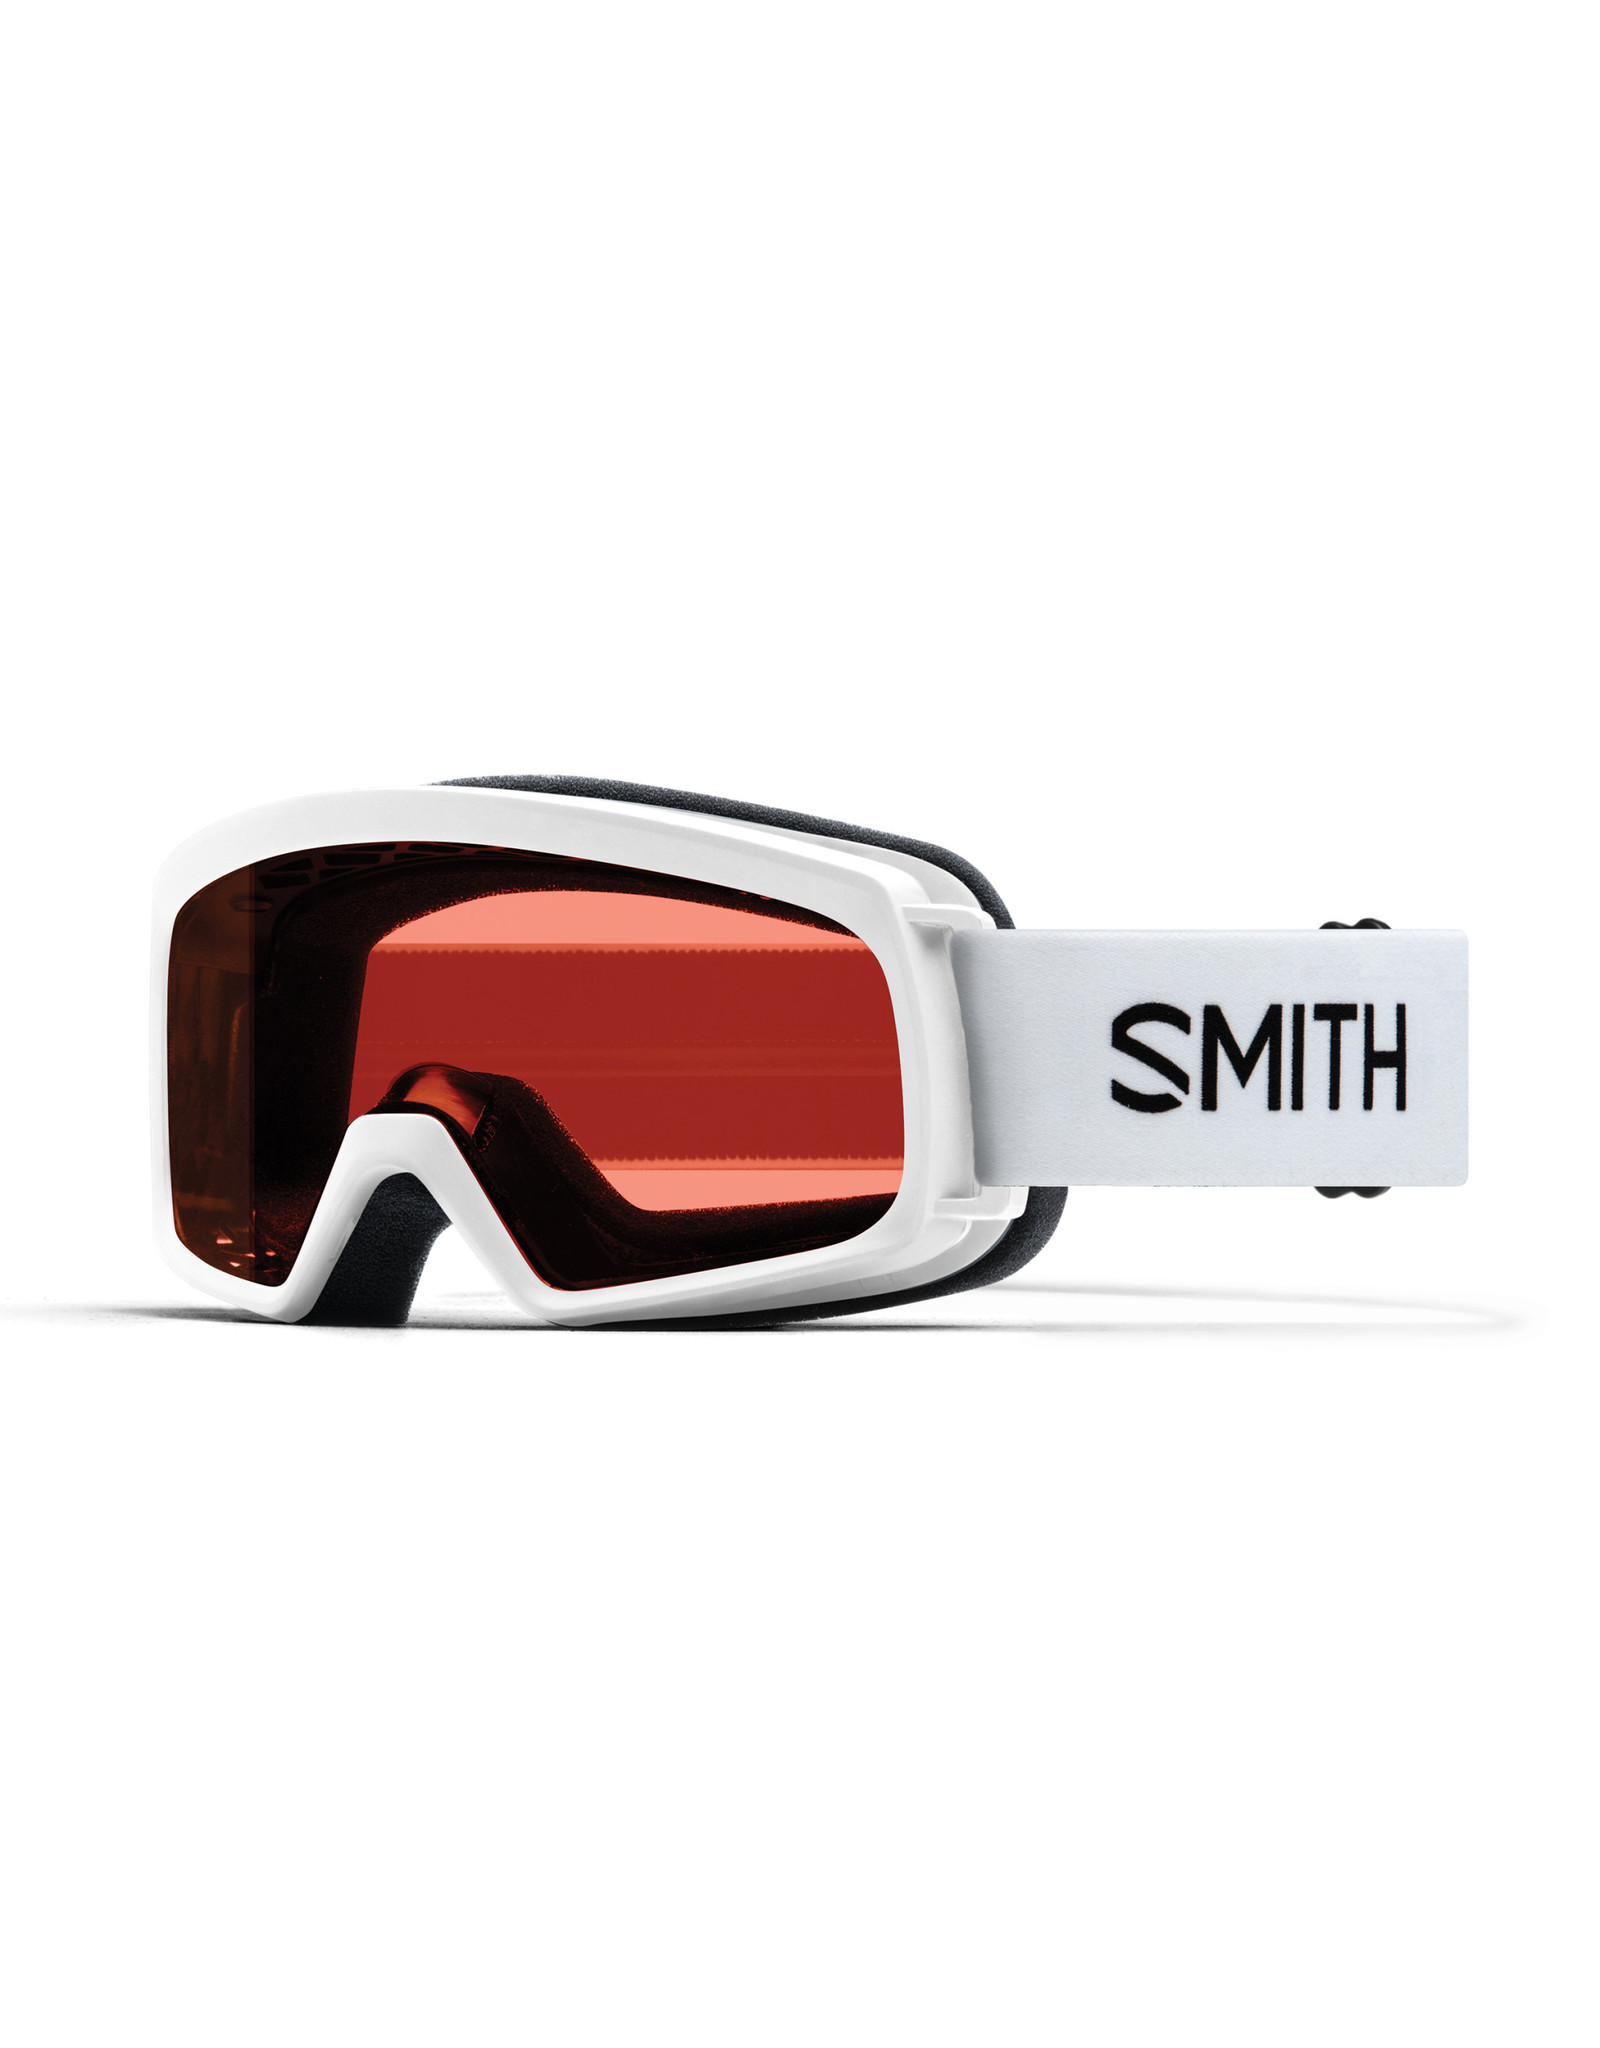 Smith SMITH RASCAL WHITE 20 GOGGLE YOUTH